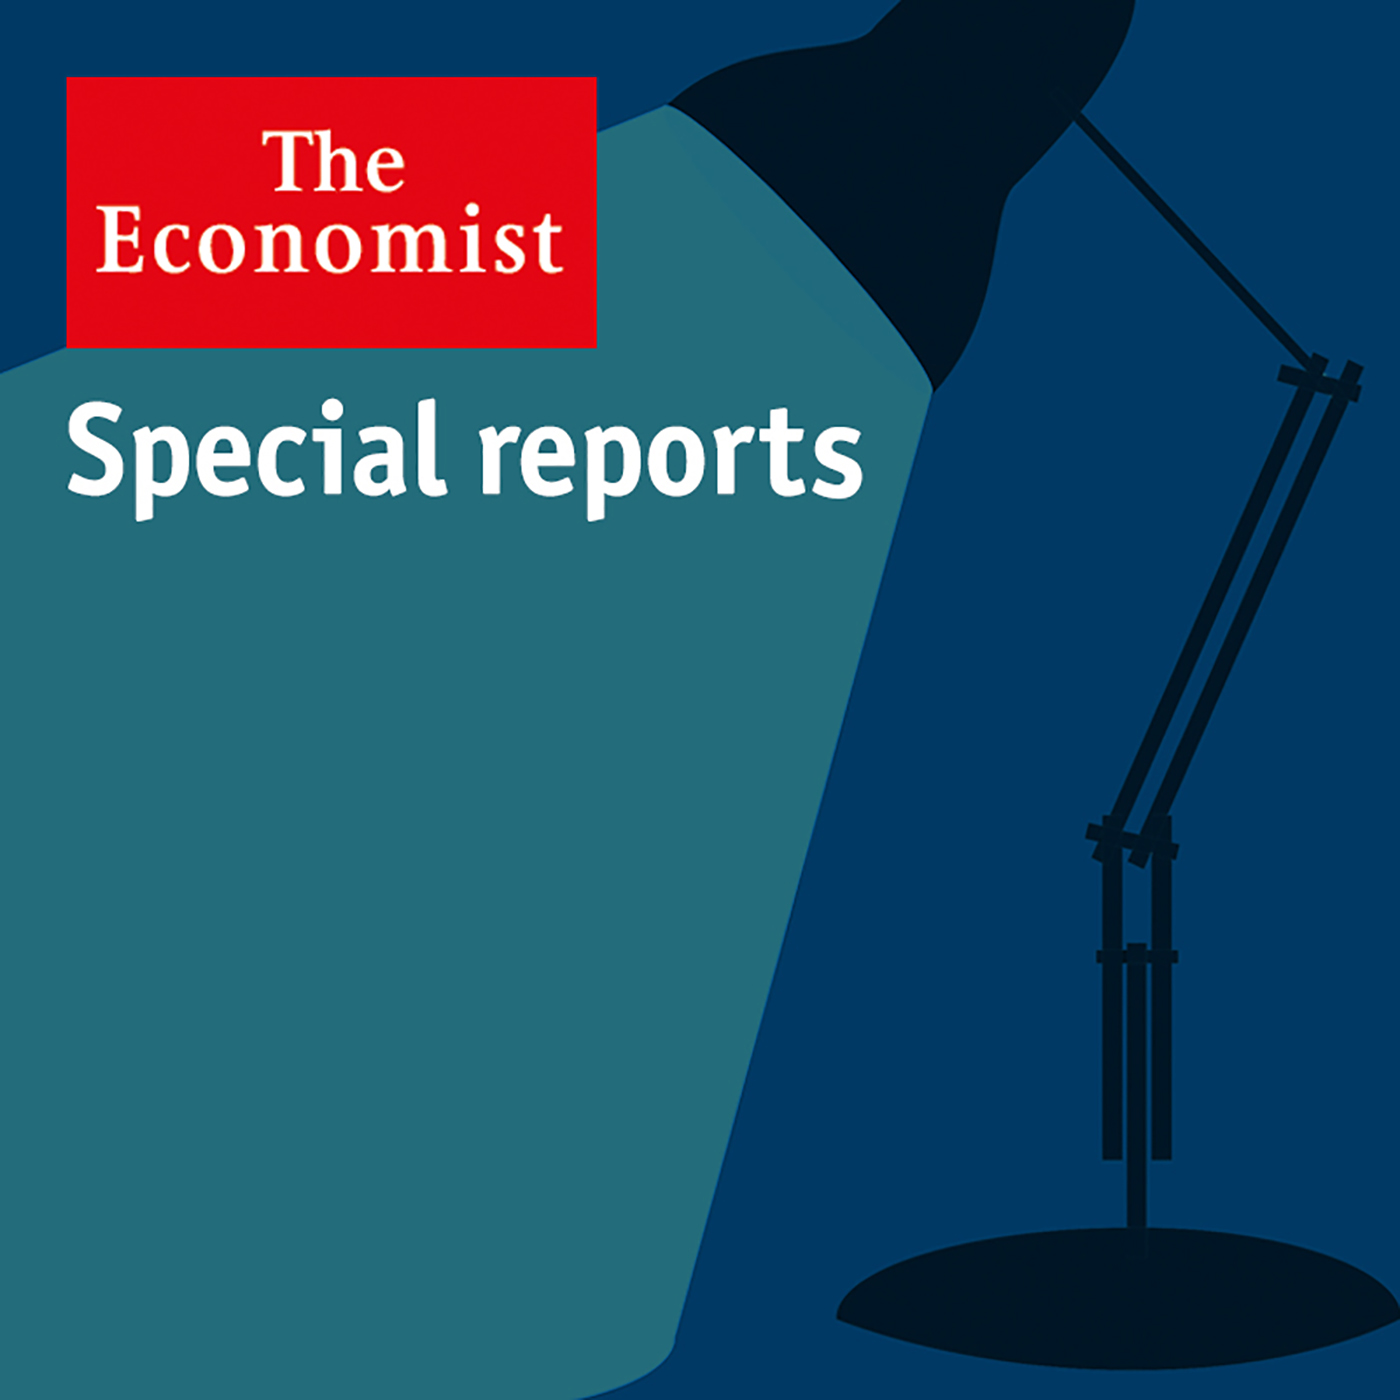 The Economist: Special reports